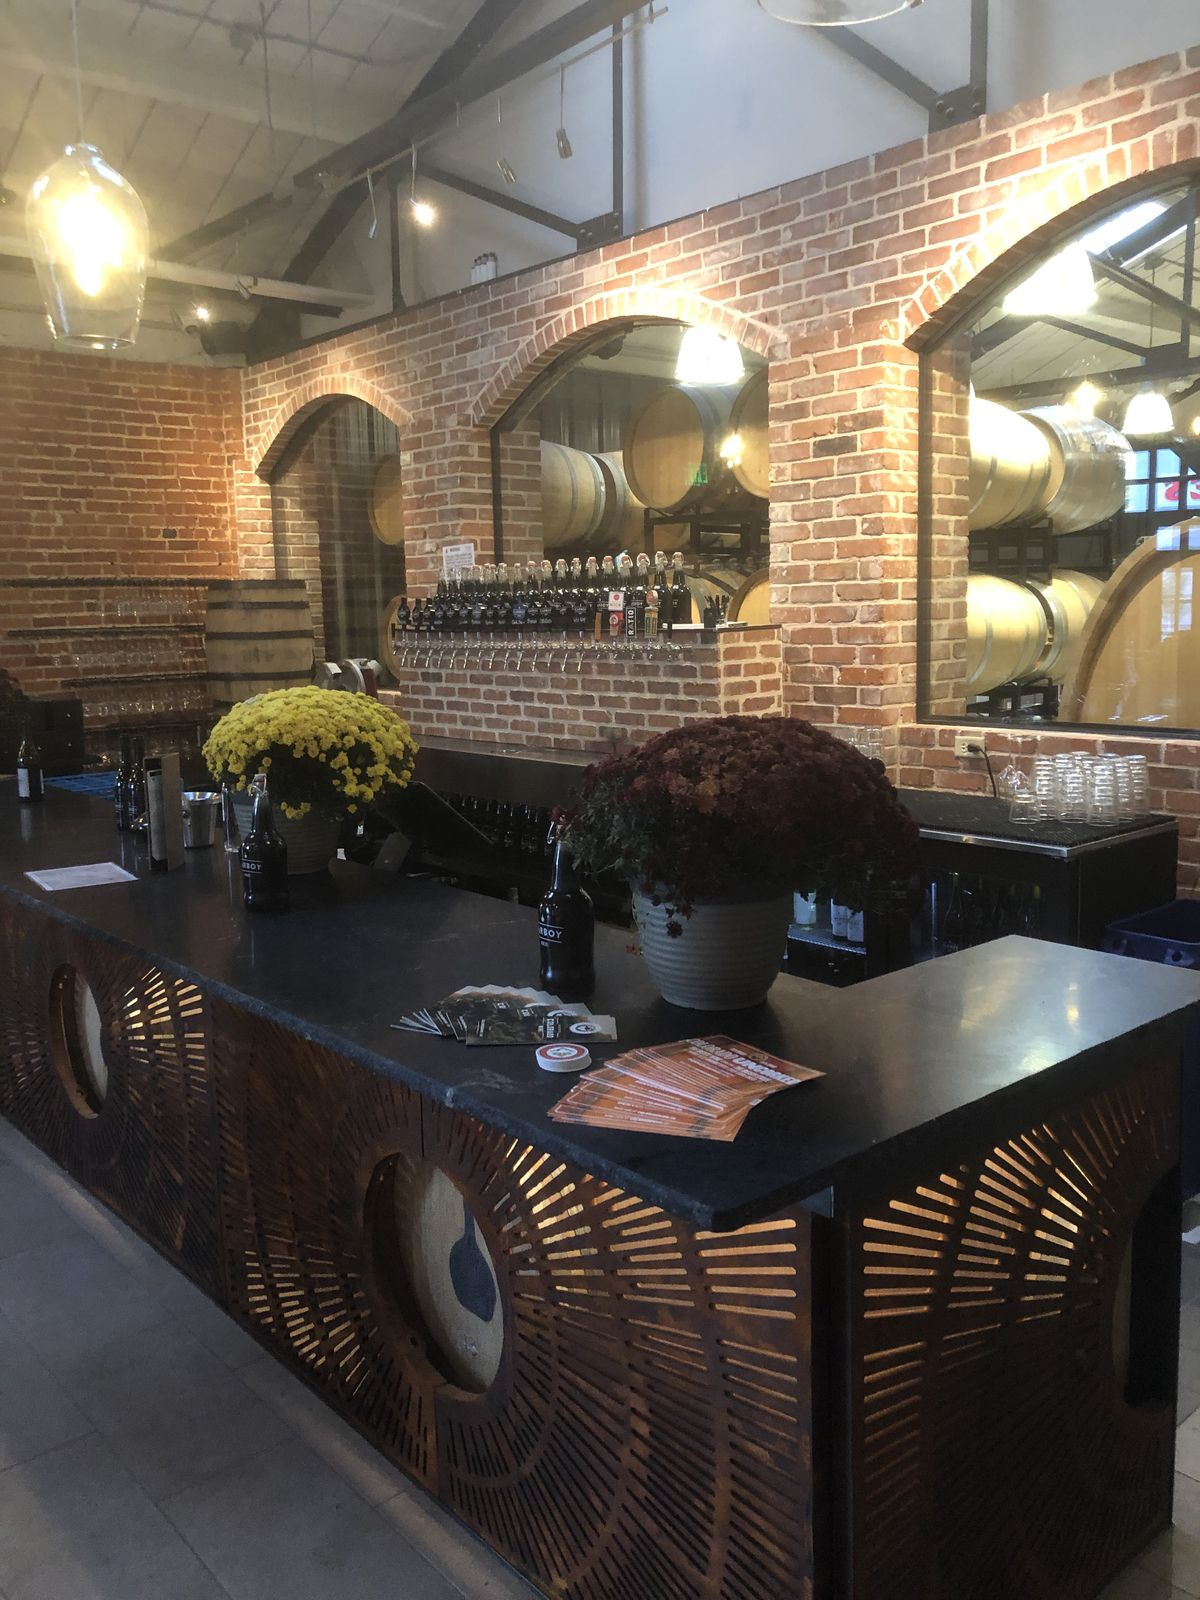 A photo of the bar in the tasting room with a bartop with pots containing flowers on it and several wine taps visible behind it